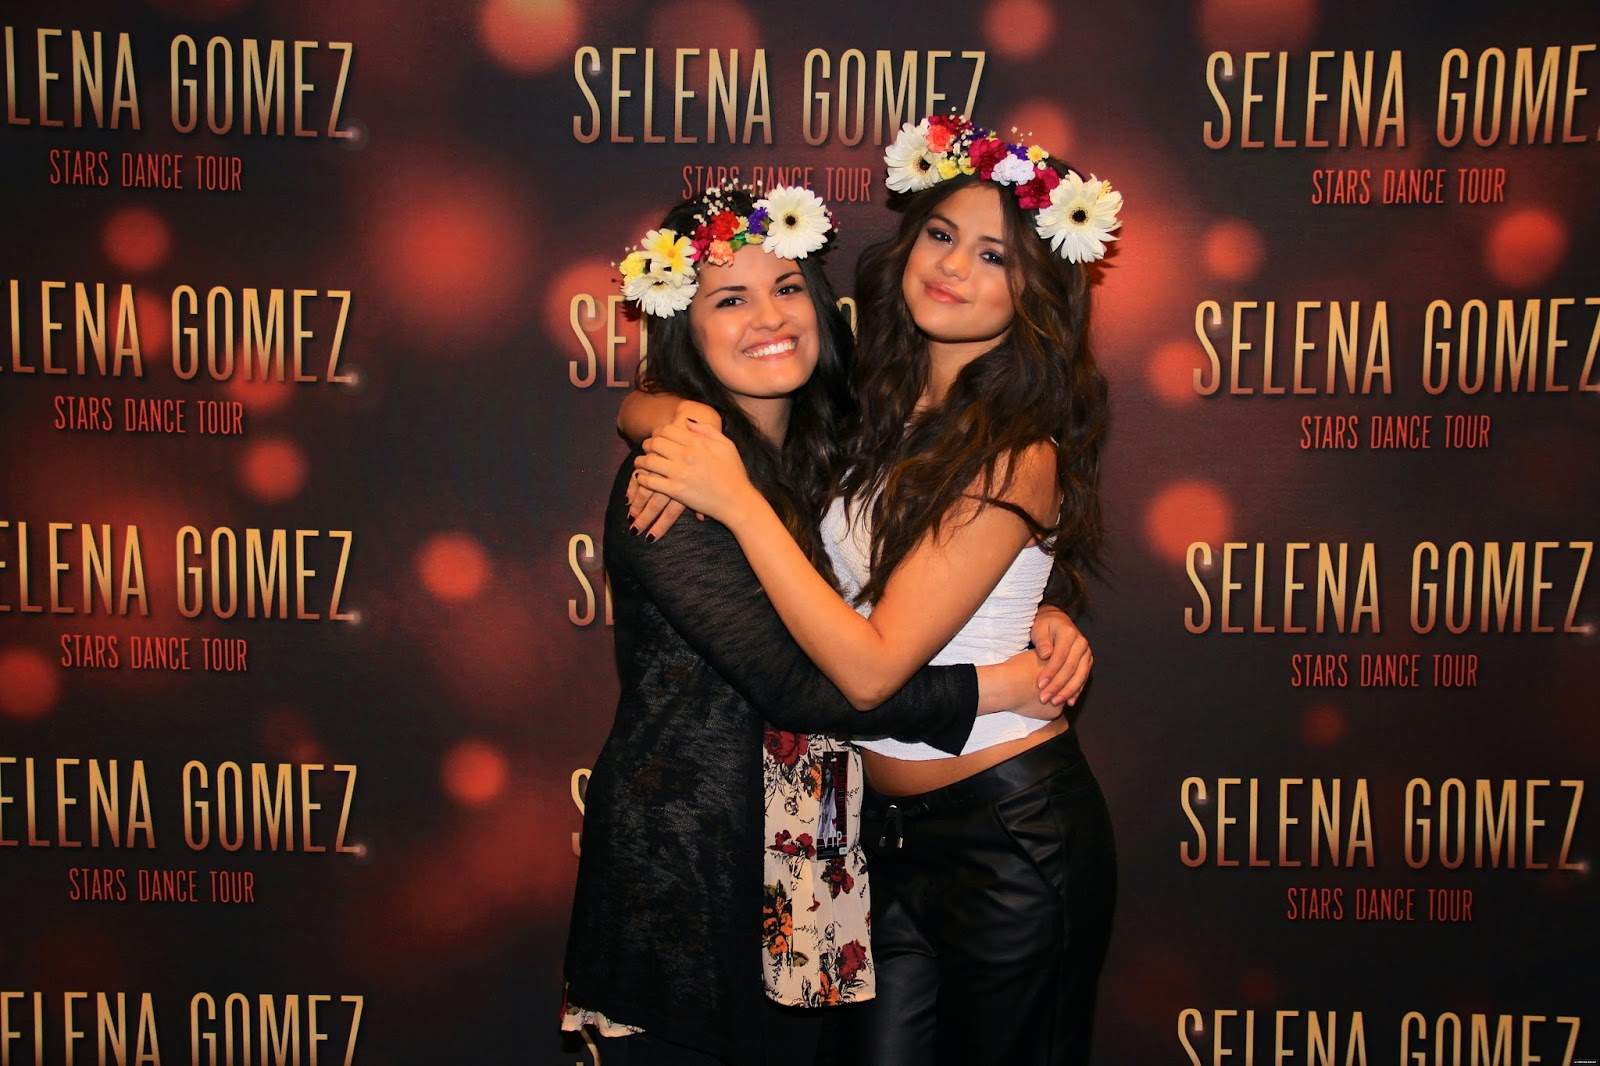 stars dance tour meet and greet photos blue